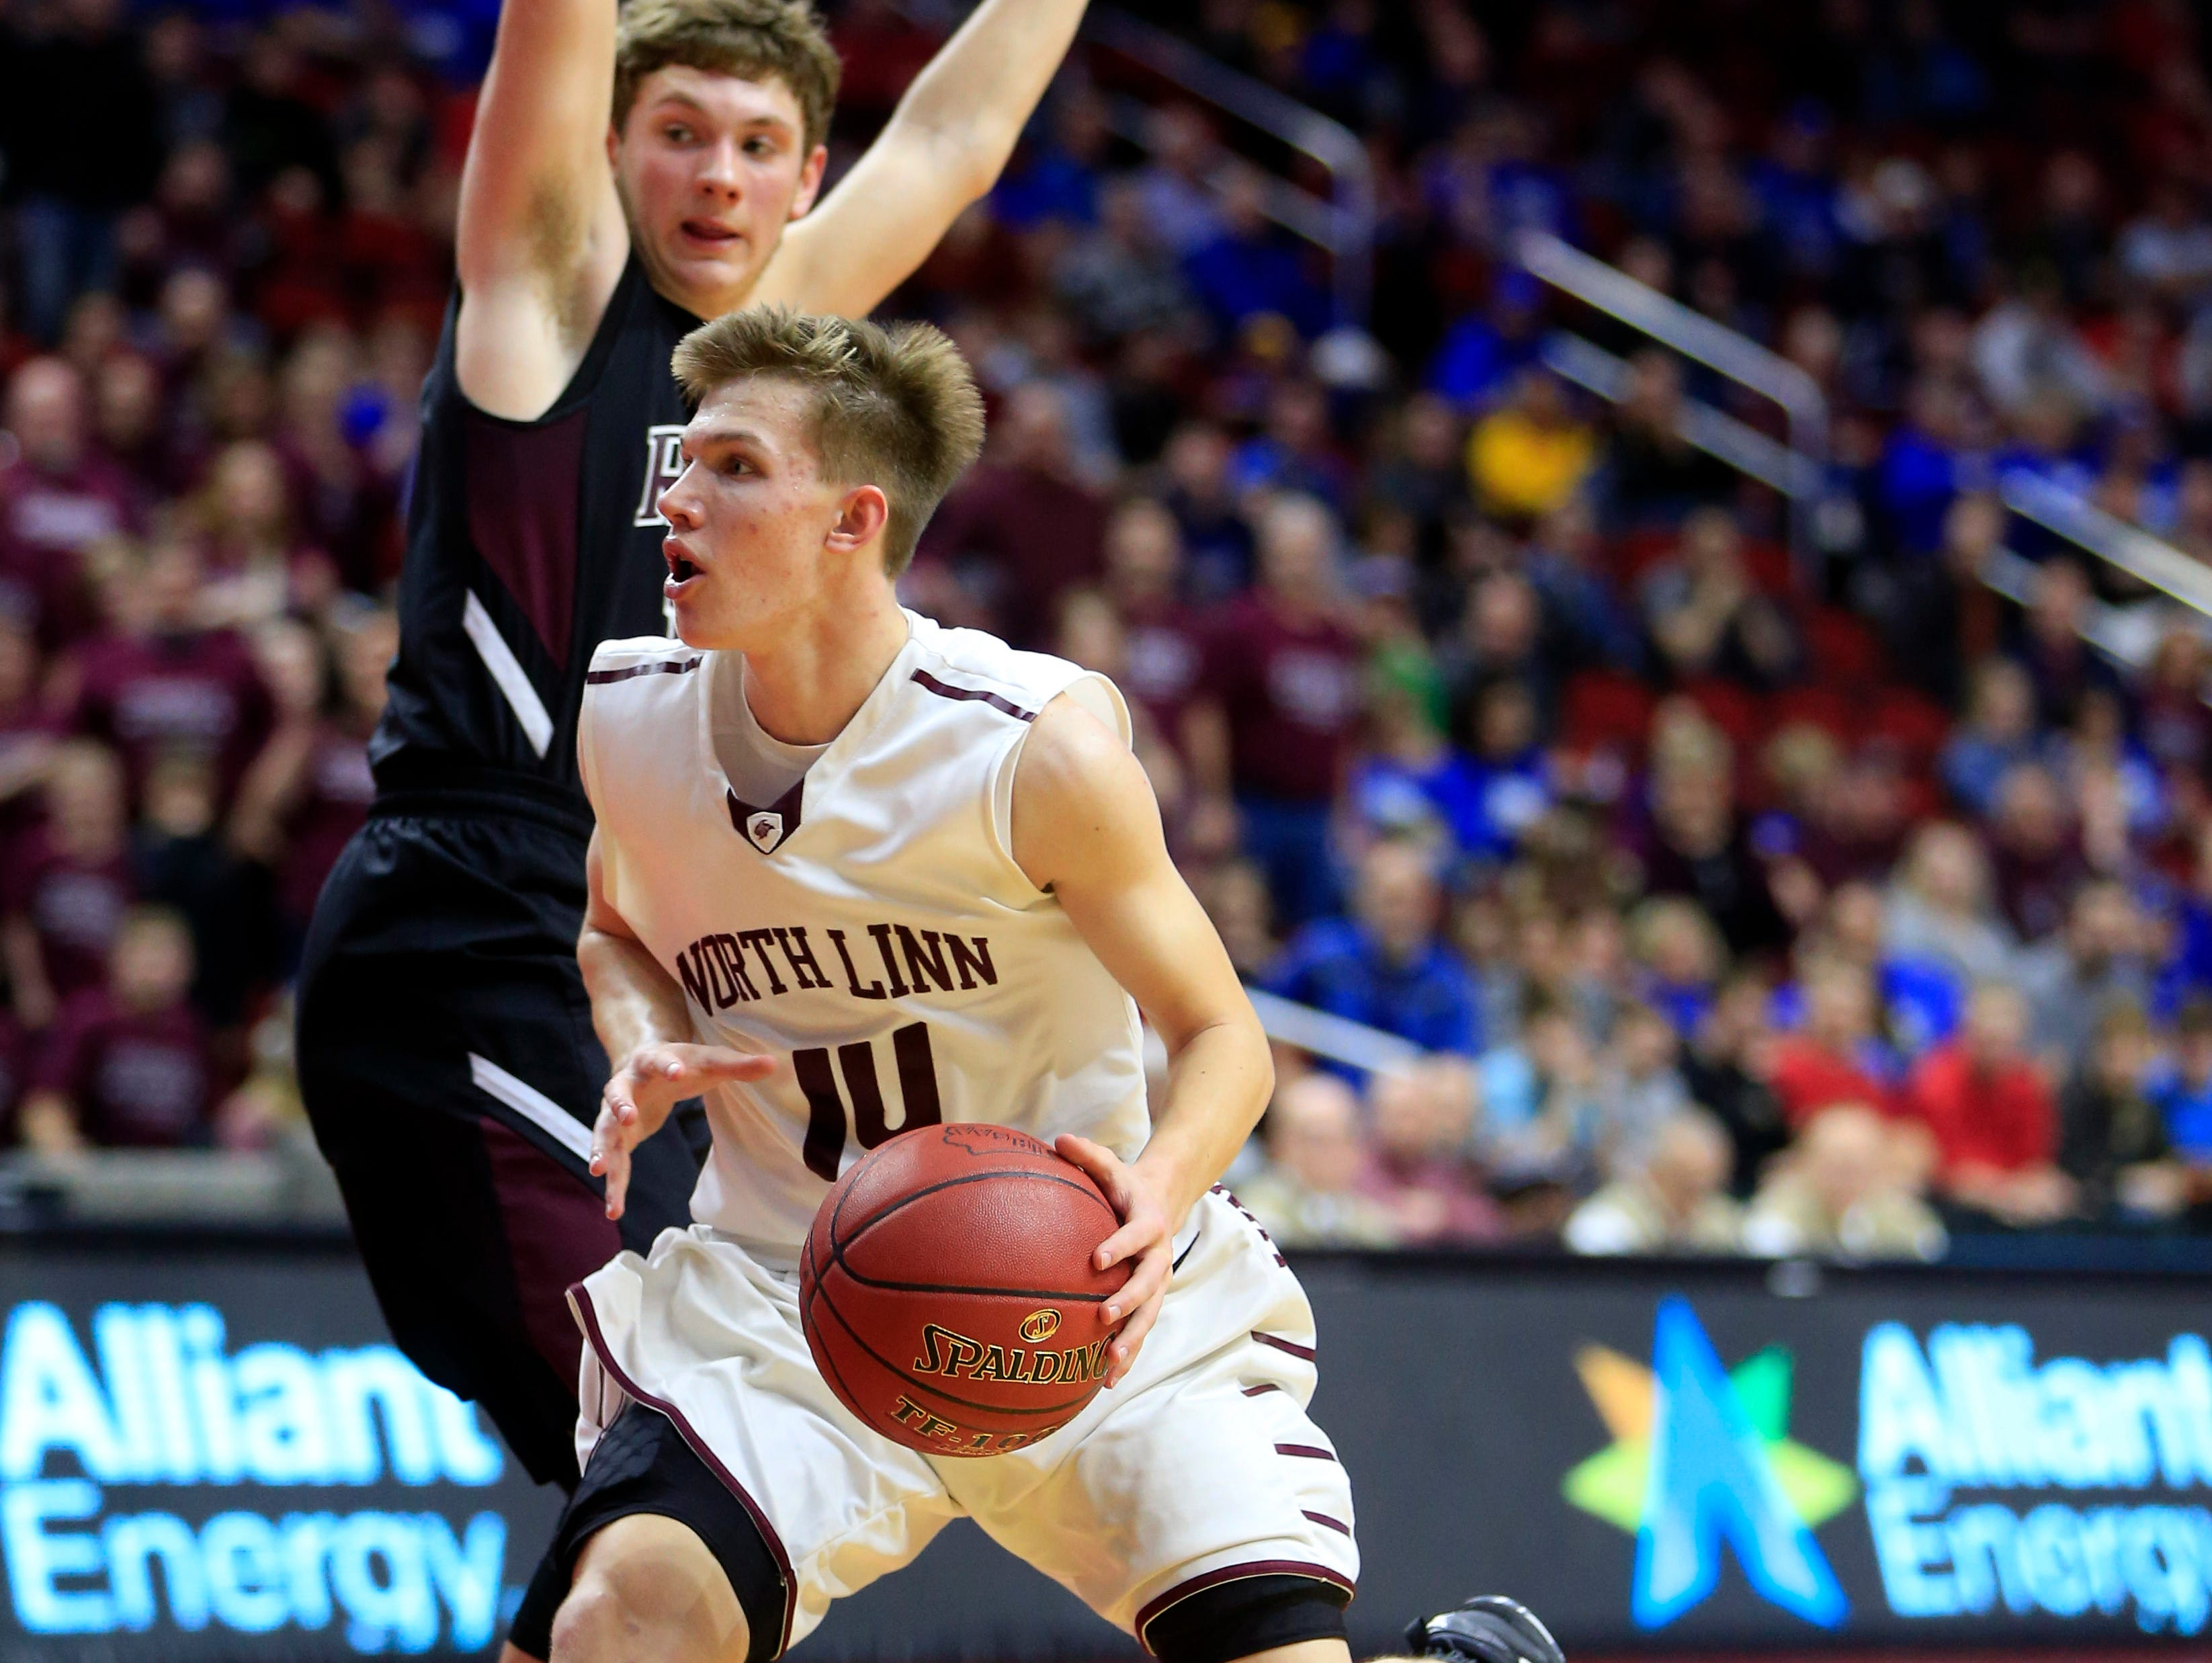 Jake Hilmer of North Linn drives to the basket during Monday's Class 1A quarterfinal against Maple Valley-Anthon-Oto in Des Moines. Hilmer has helped the Lynx to an unbeaten season entering Thursday's semifinals.